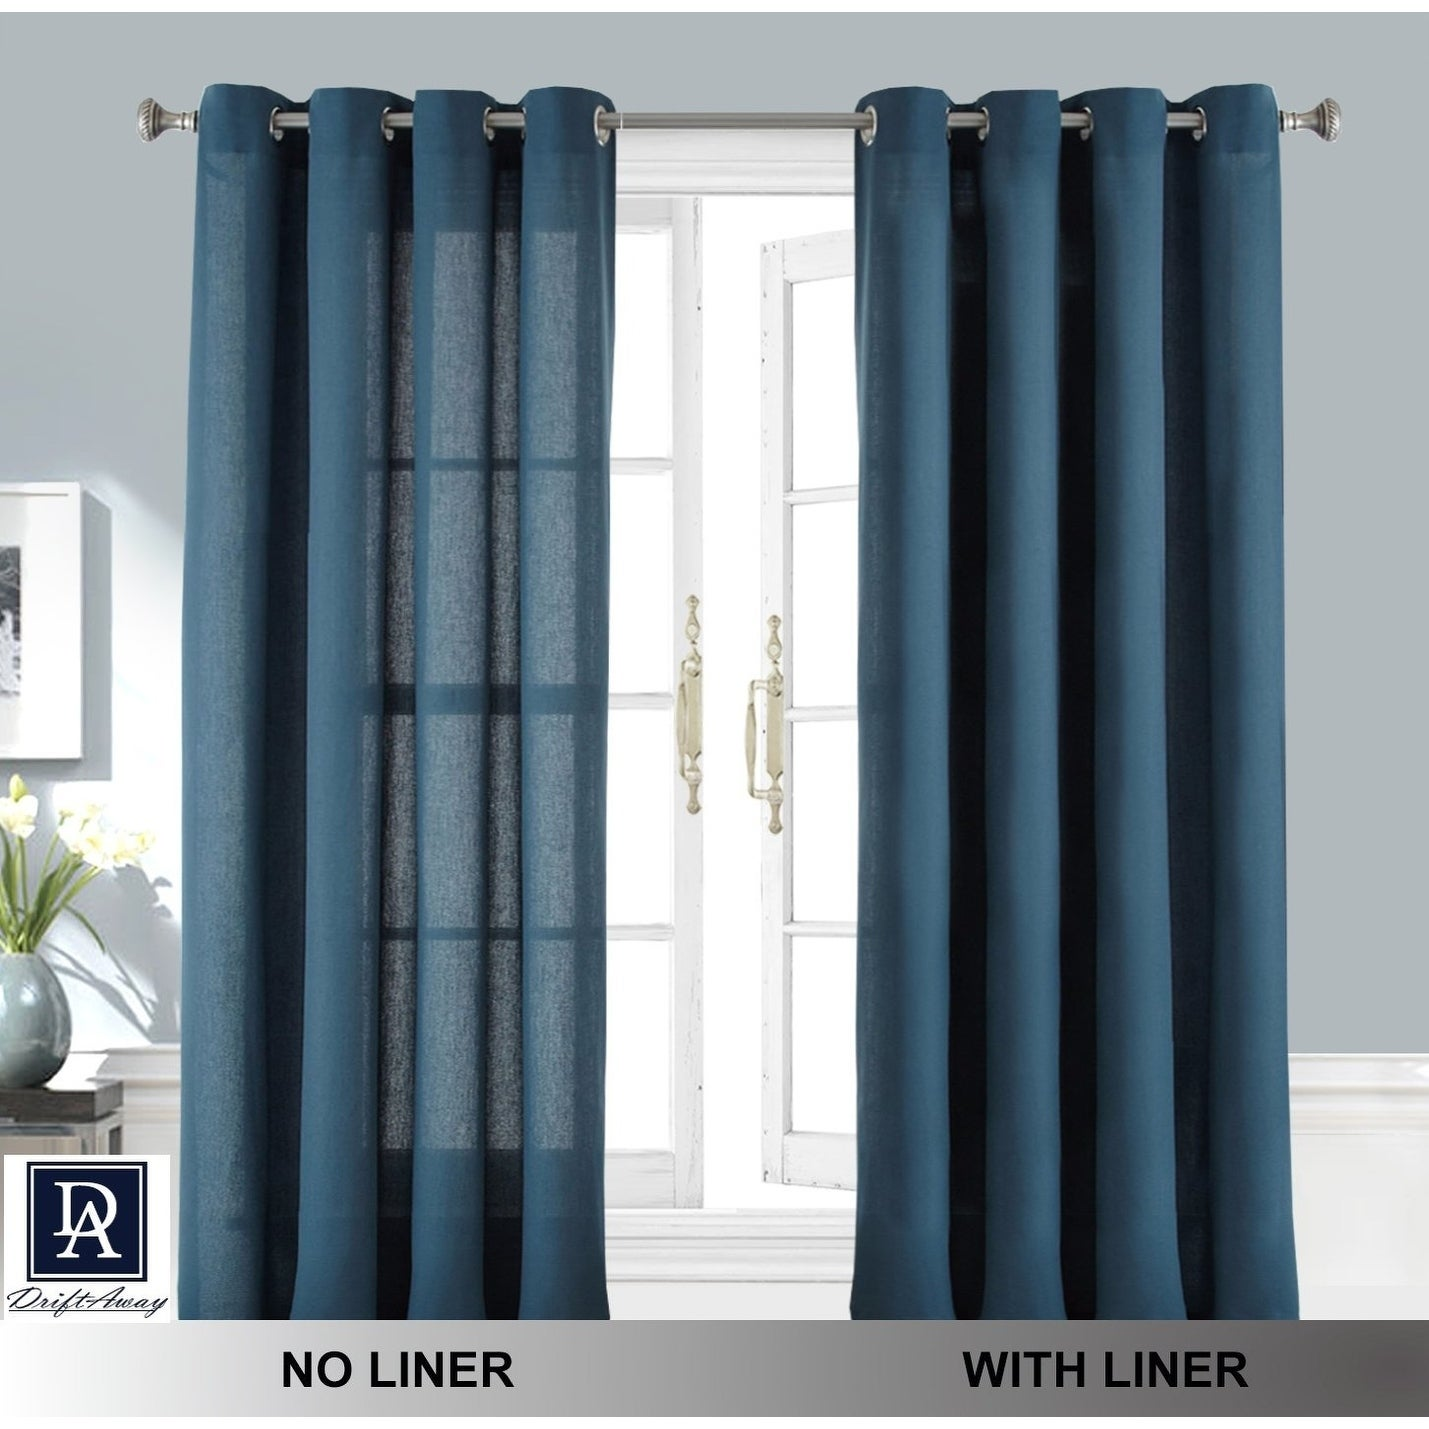 of bedroom stores blackout drape liner eclipse canova picture window for breathtaking panel size panels ideas meridian alexis drapes full curtain elliot curtains at